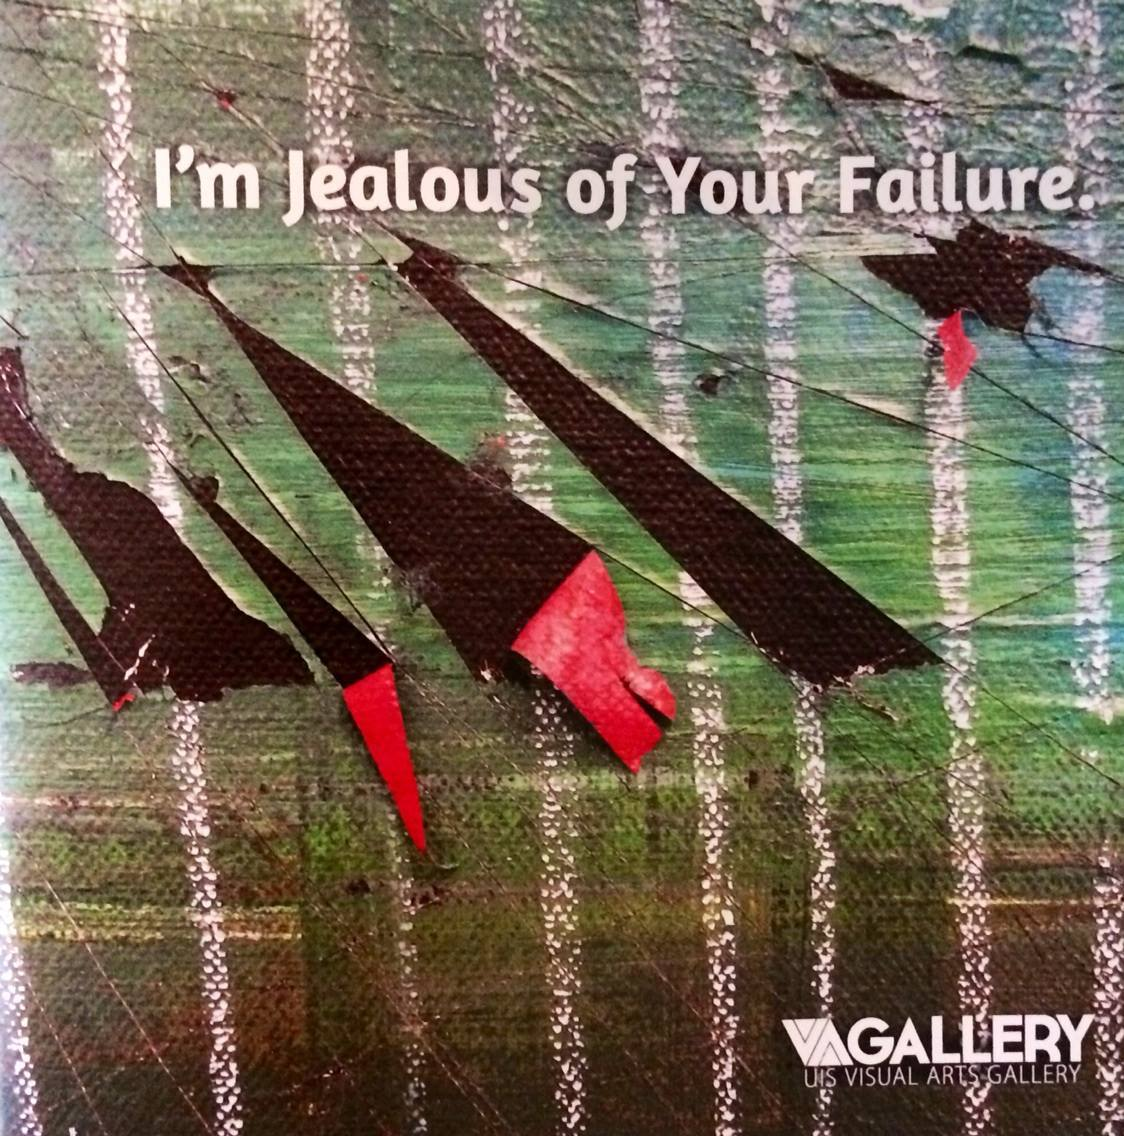 i'm jealous of your failure opens at visual arts gallery. university of illinois springfield